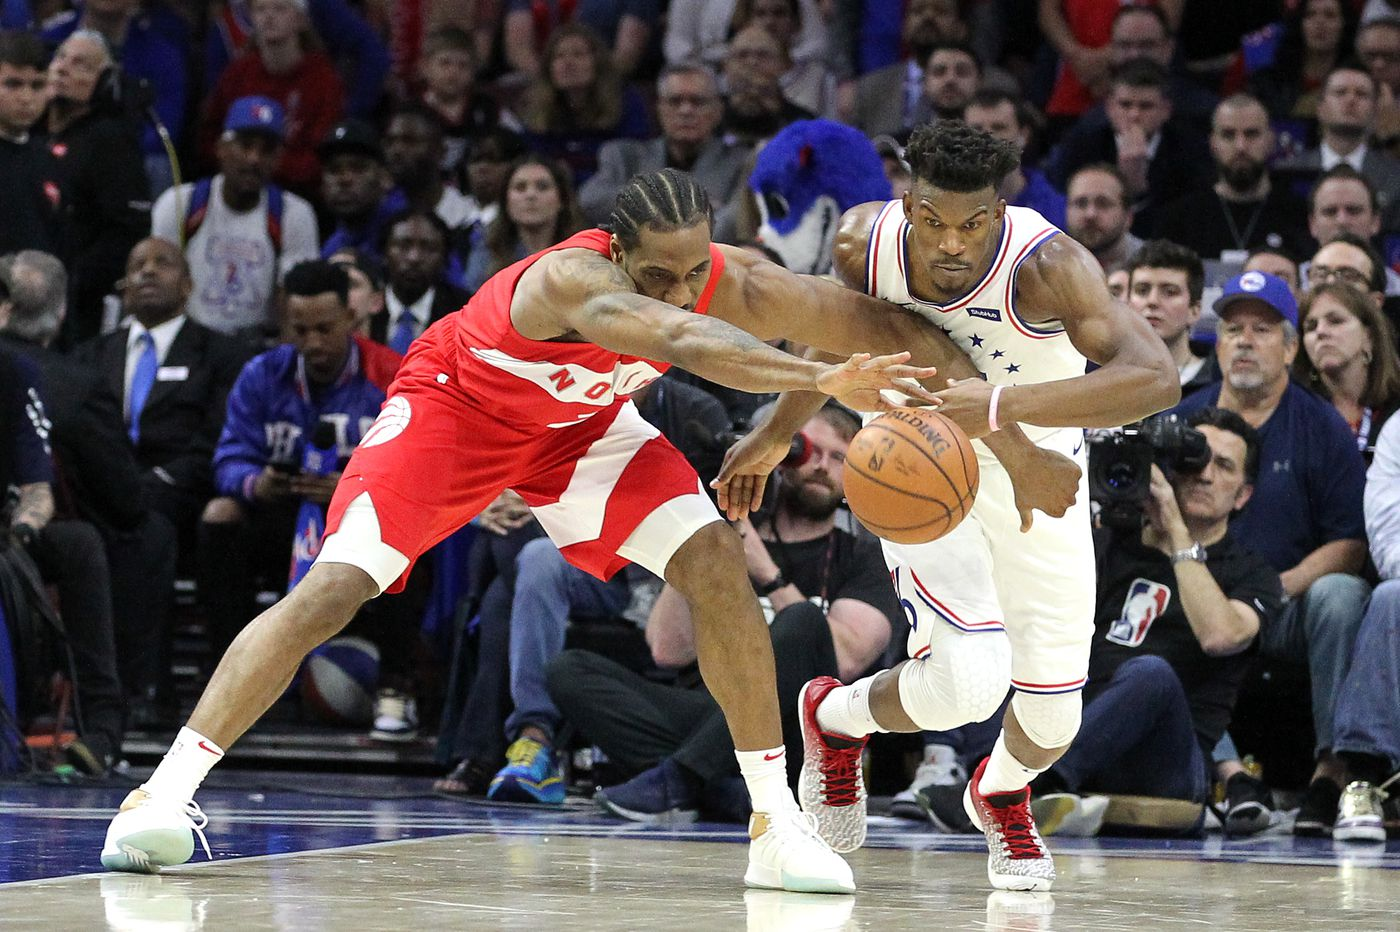 168ae6a4b1e The Raptors didn t beat the Sixers. Kawhi Leonard did. And he might just  win this series by himself.